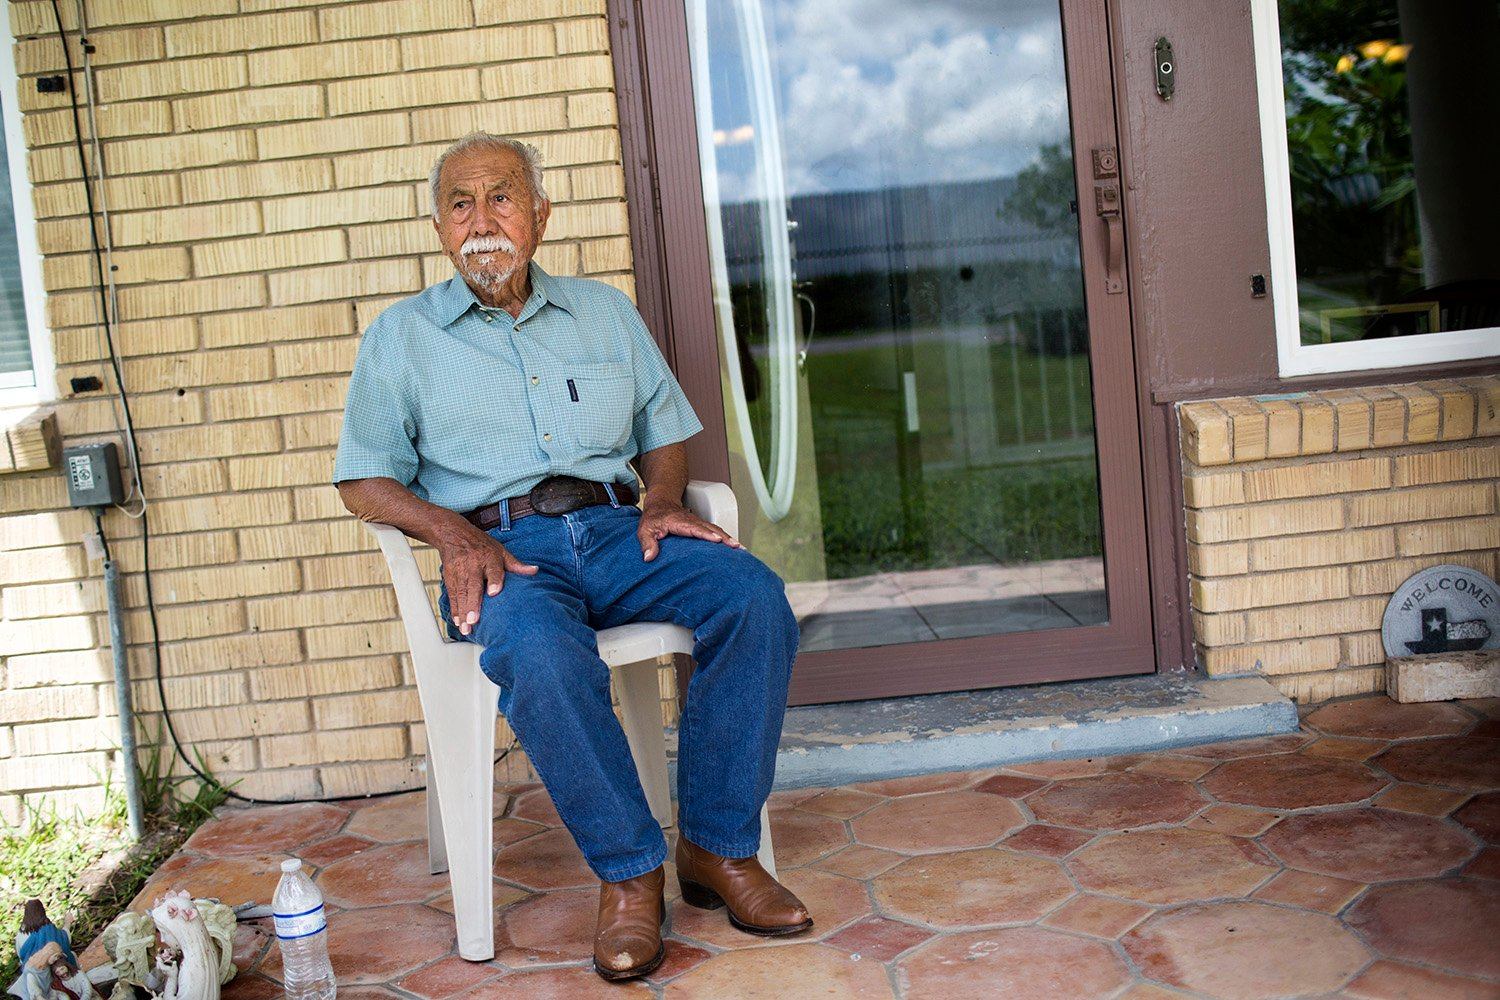 Tomas Perez outside his home on Oklahoma Ave. in Brownsville, on Aug. 20, 2017.